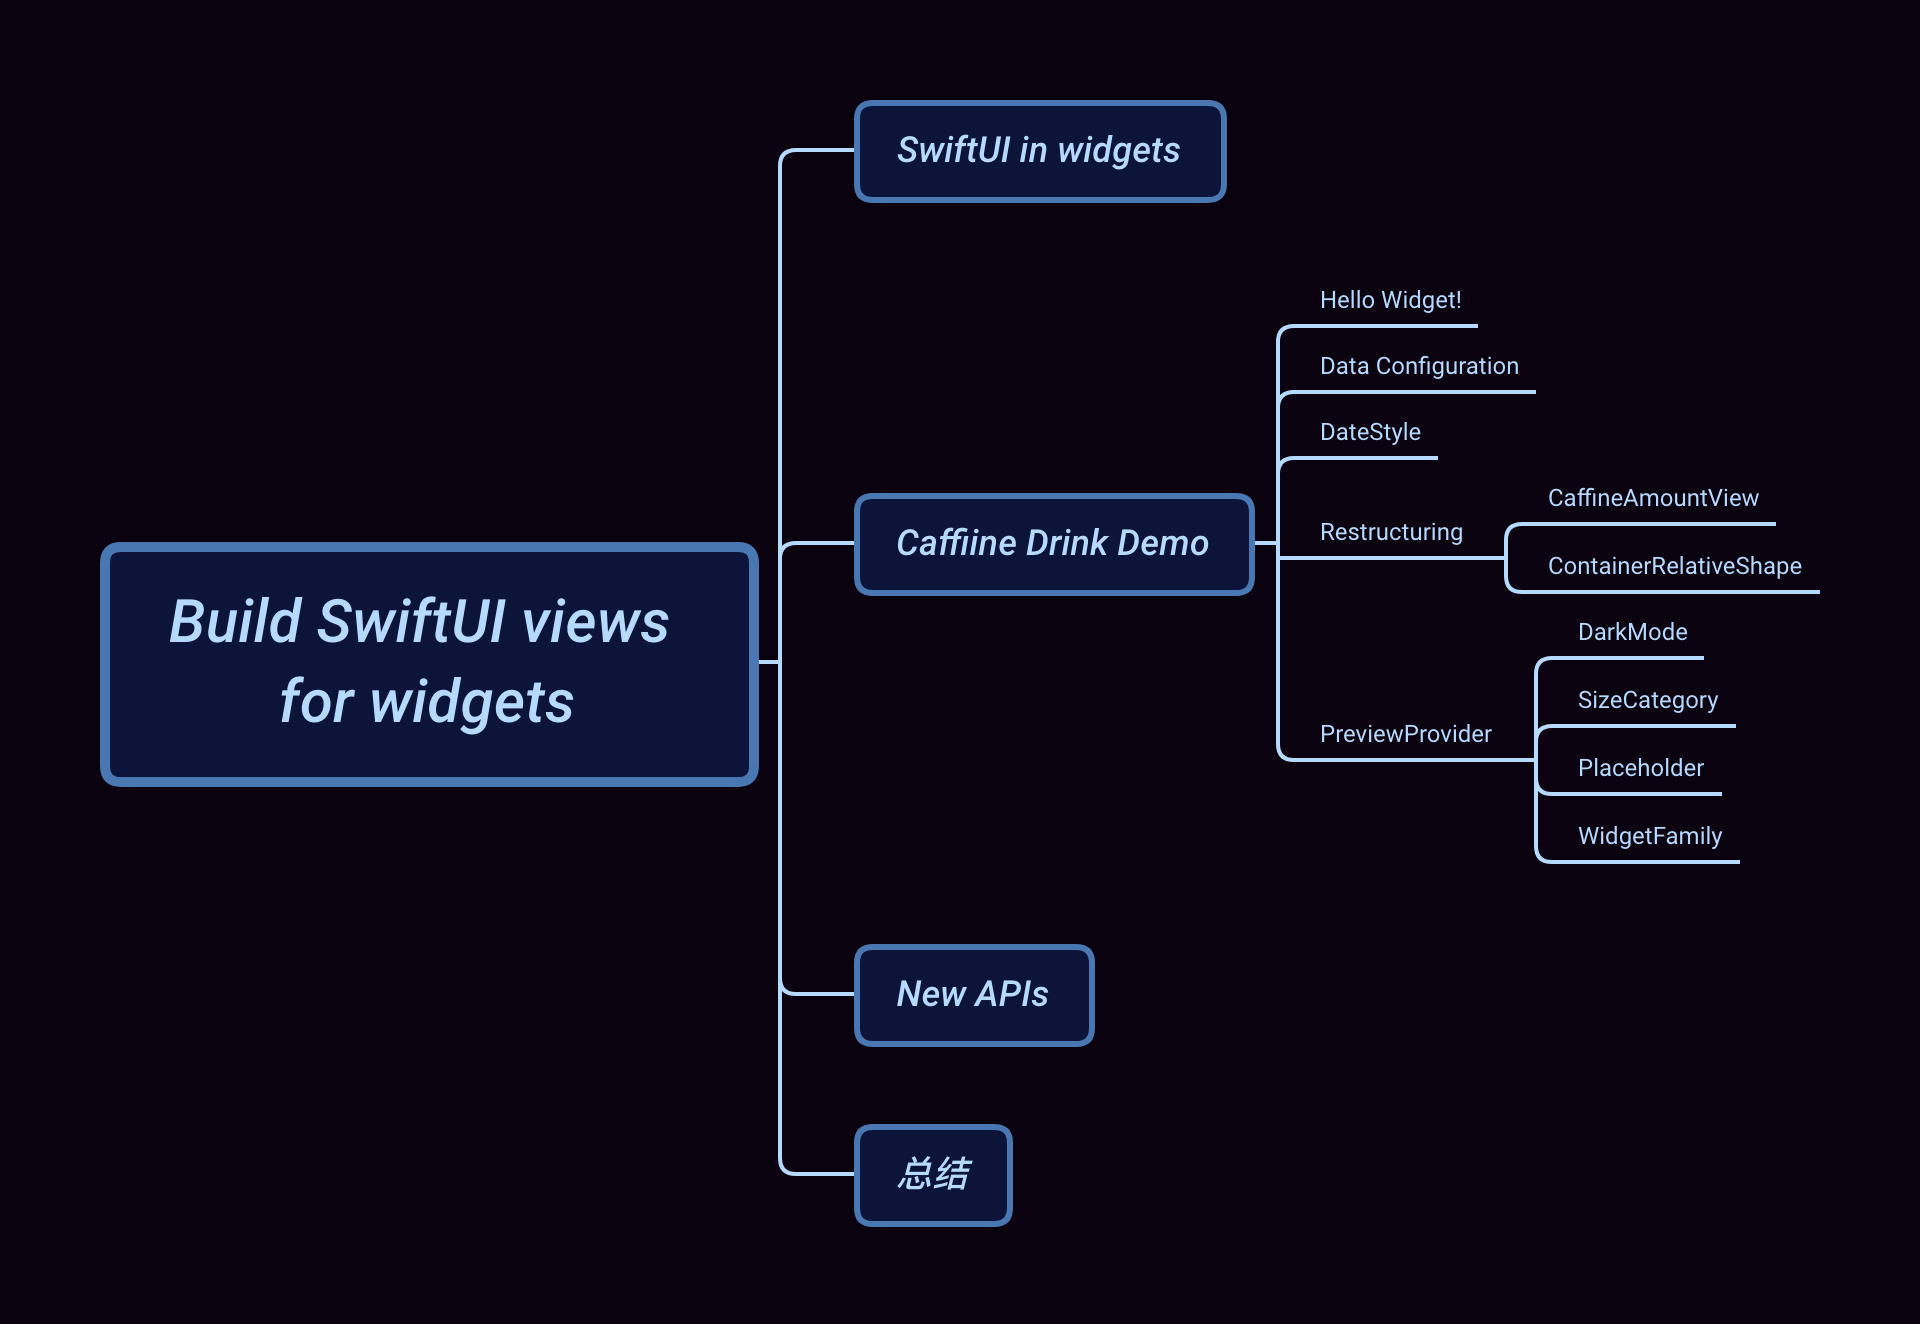 Build SwiftUI views for widgets